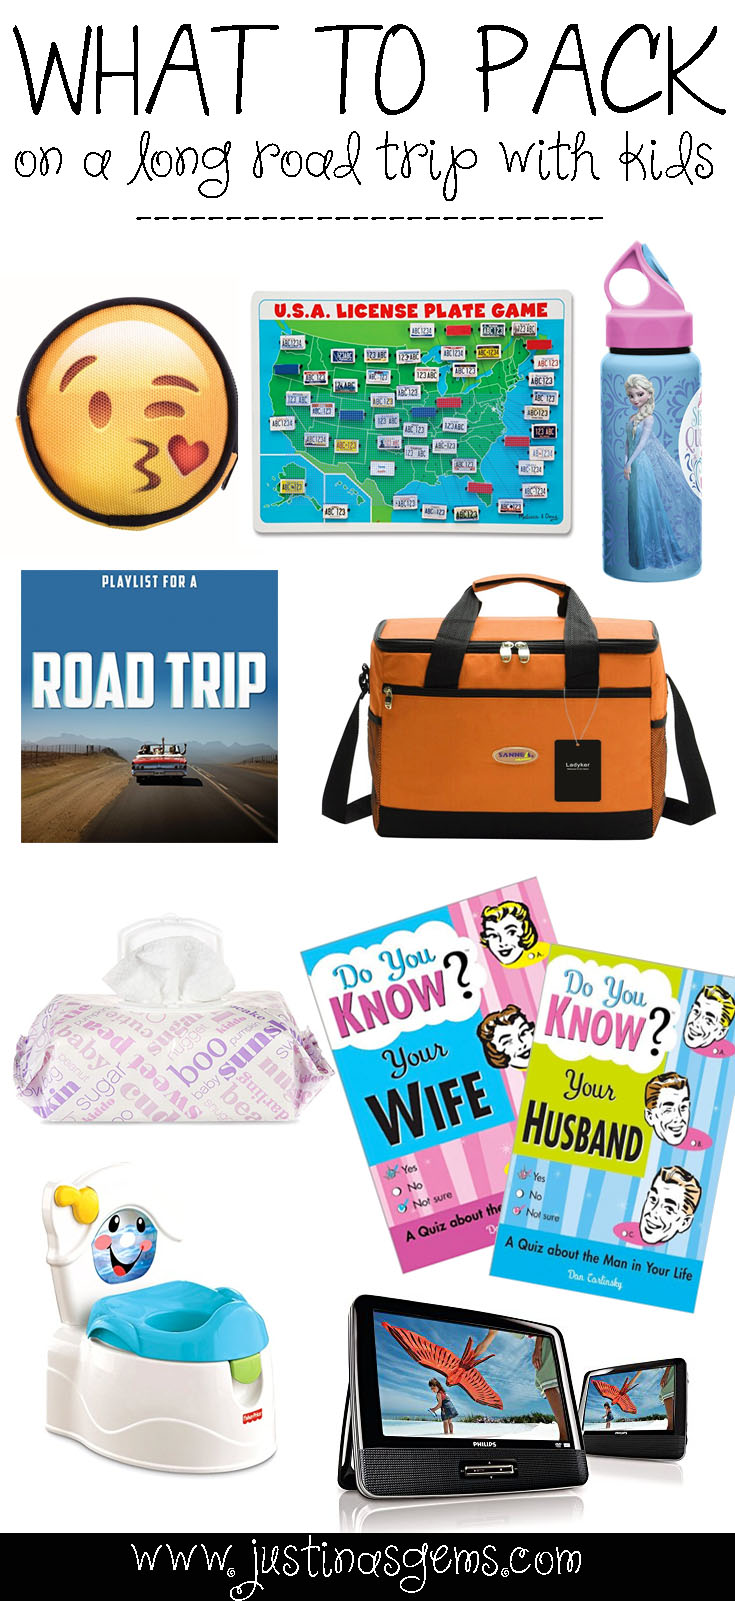 What to Pack on a Long Road Trip with Kids